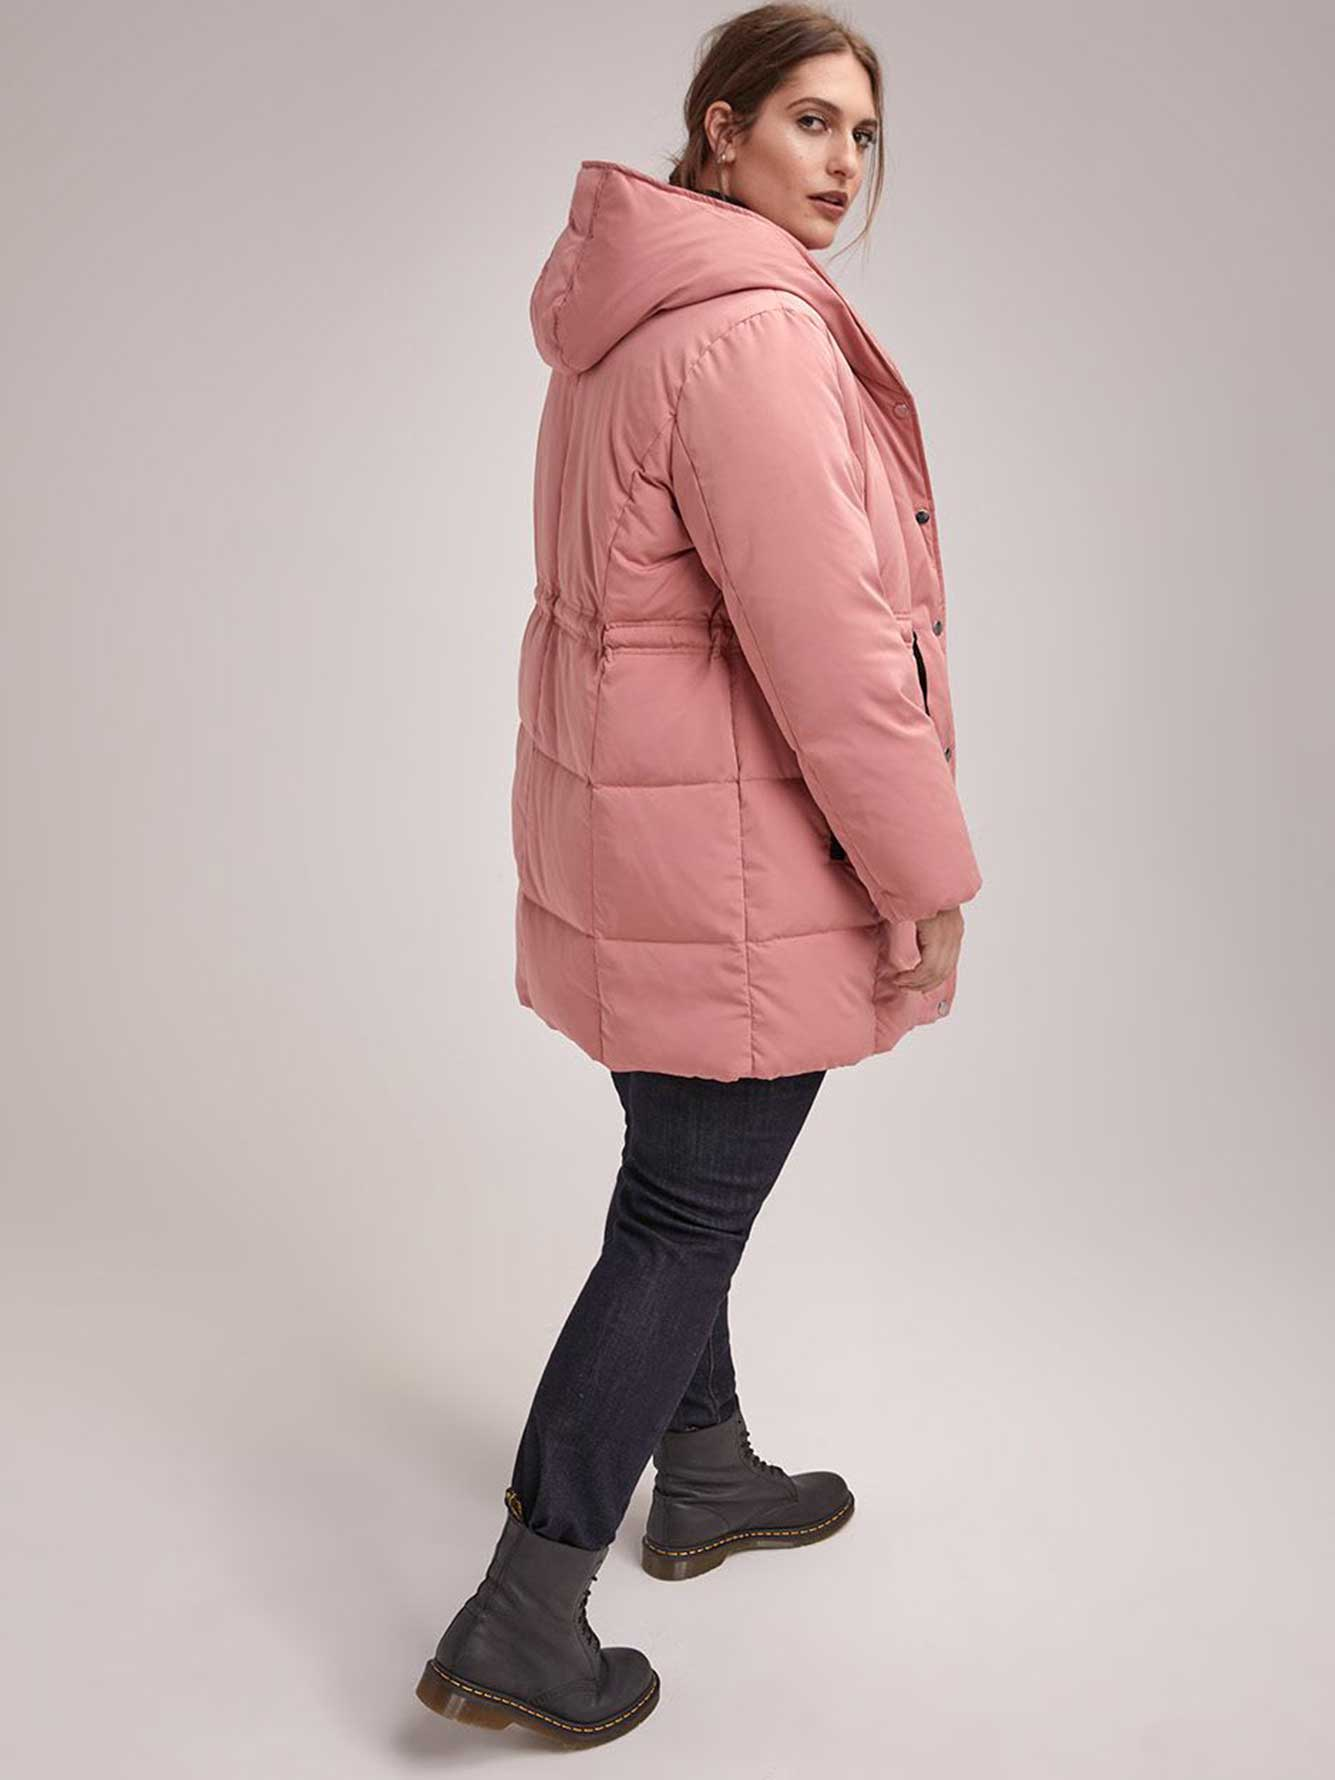 Mid-Length Puffer Jacket with Hood - In Every Story